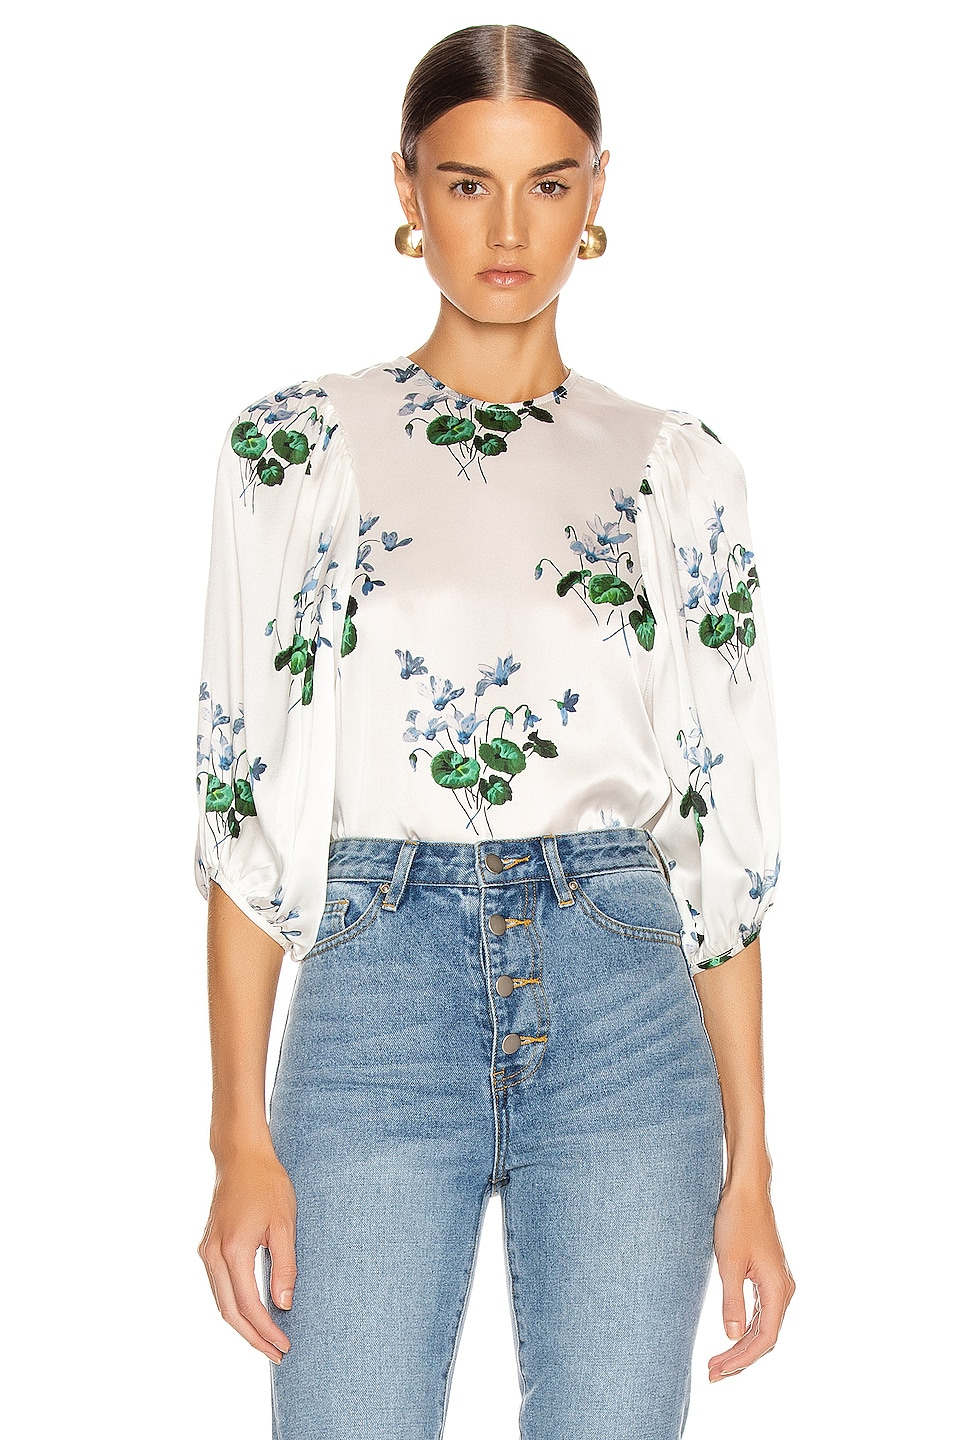 Image 1 of Les Reveries Puff Sleeve Top in Blue Daffodil & White